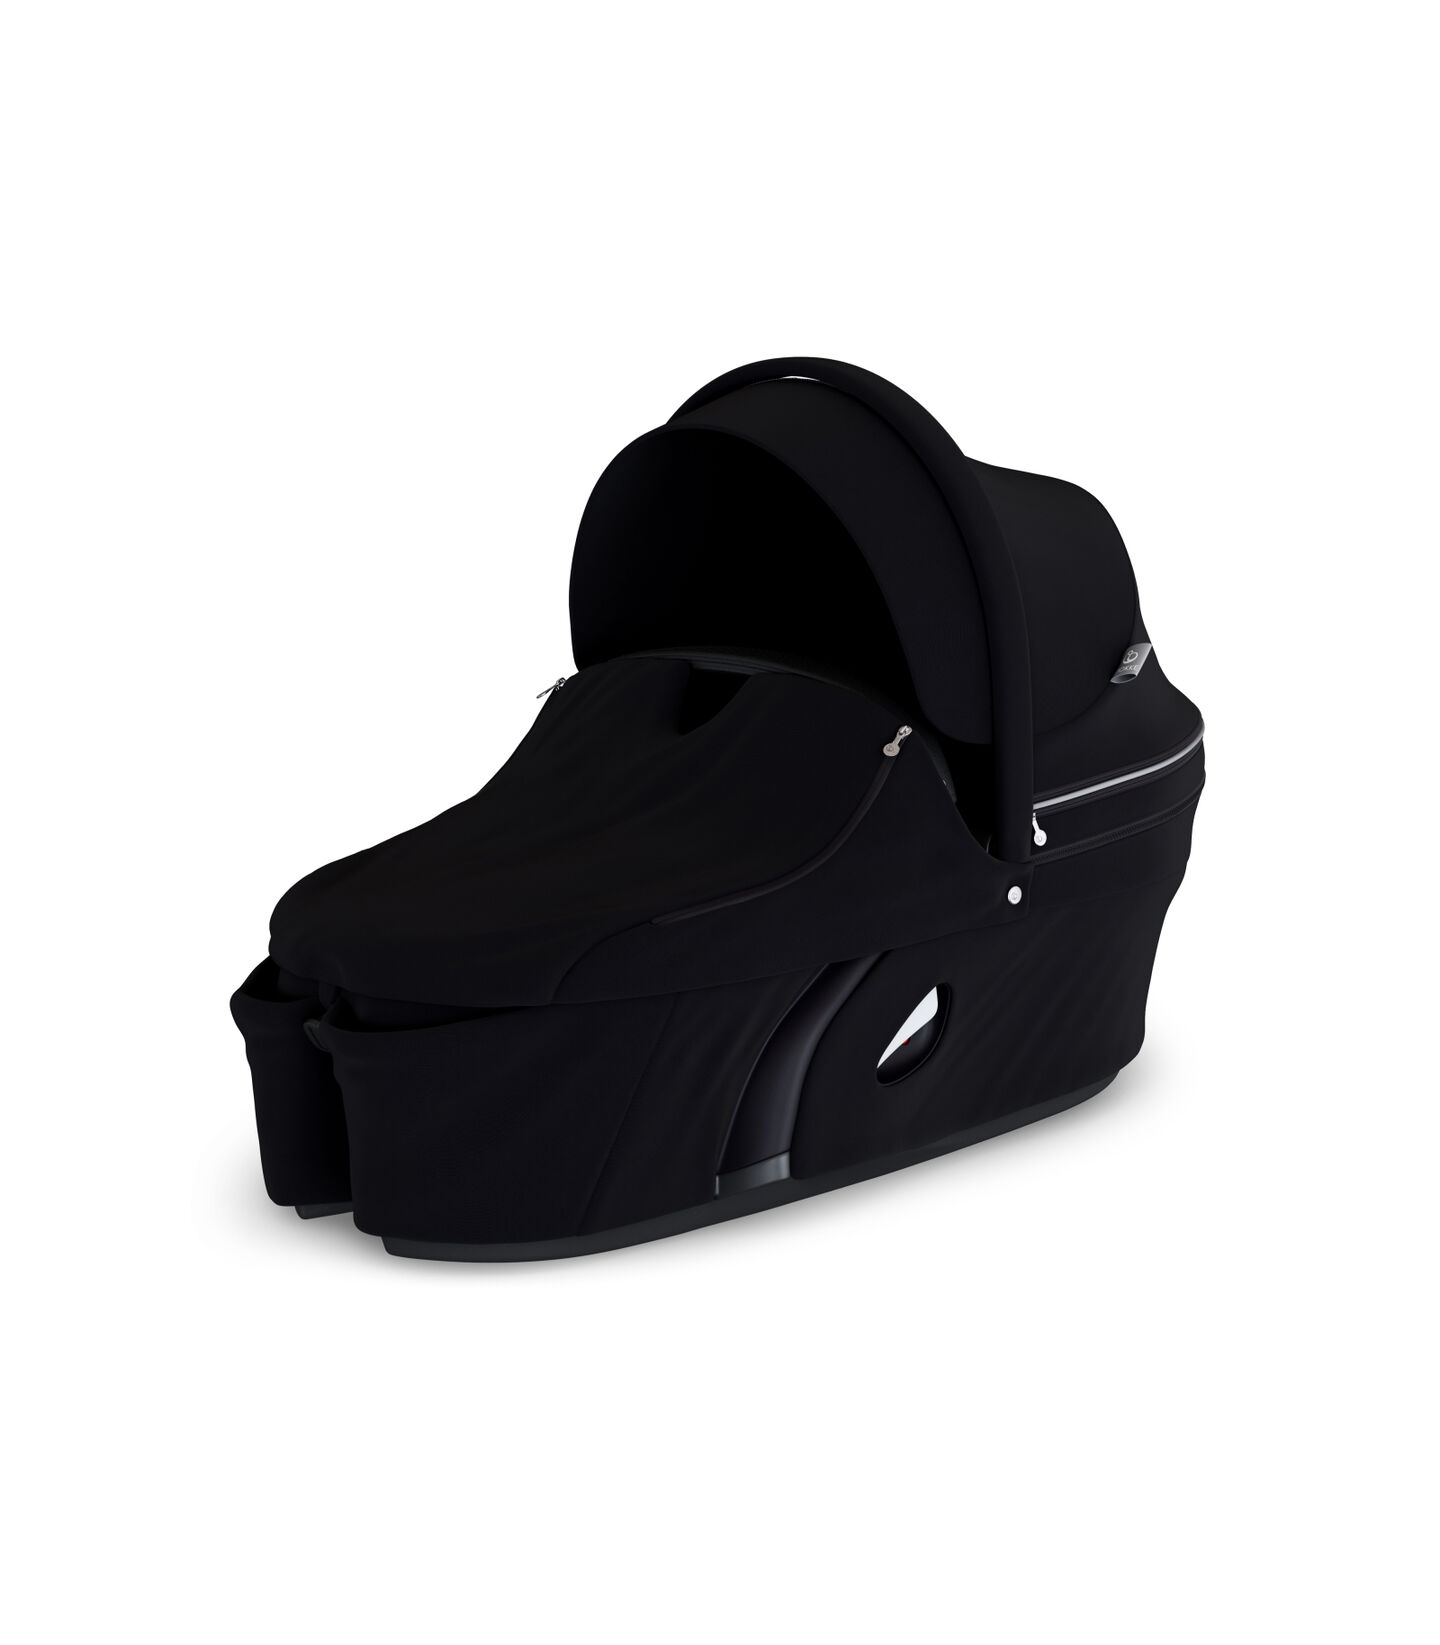 Stokke® Xplory® Carry Cot Black. With Storm Cover.